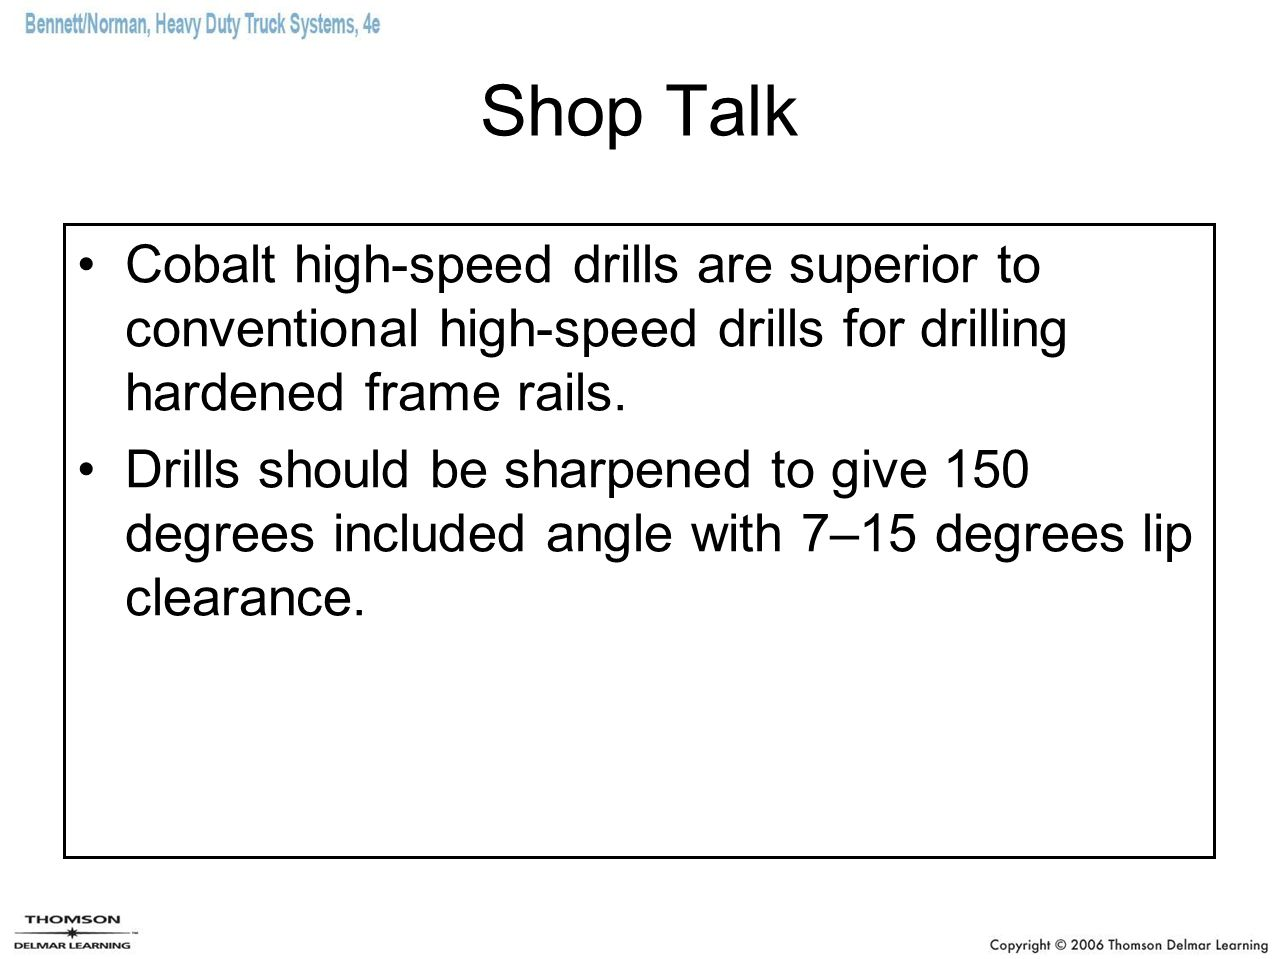 Shop Talk Cobalt high-speed drills are superior to conventional high-speed drills for drilling hardened frame rails.